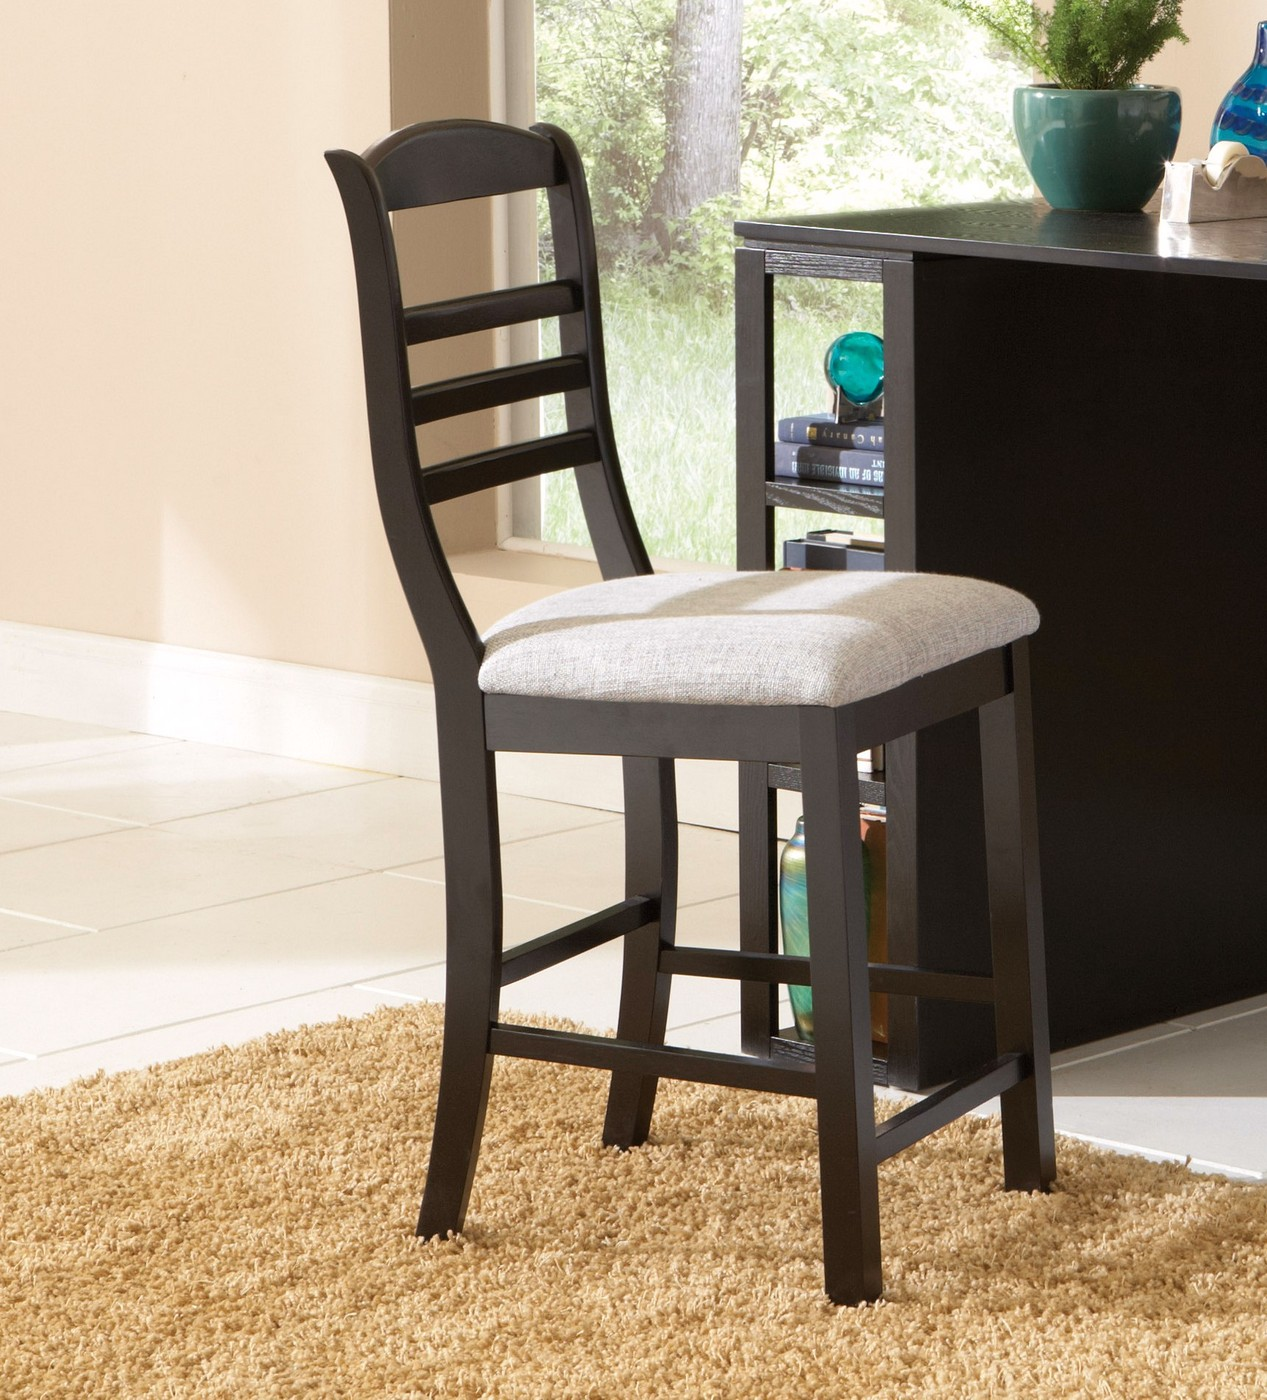 counter height computer chair wooden table and chairs for 18 inch dolls bradford desk in painted black wood